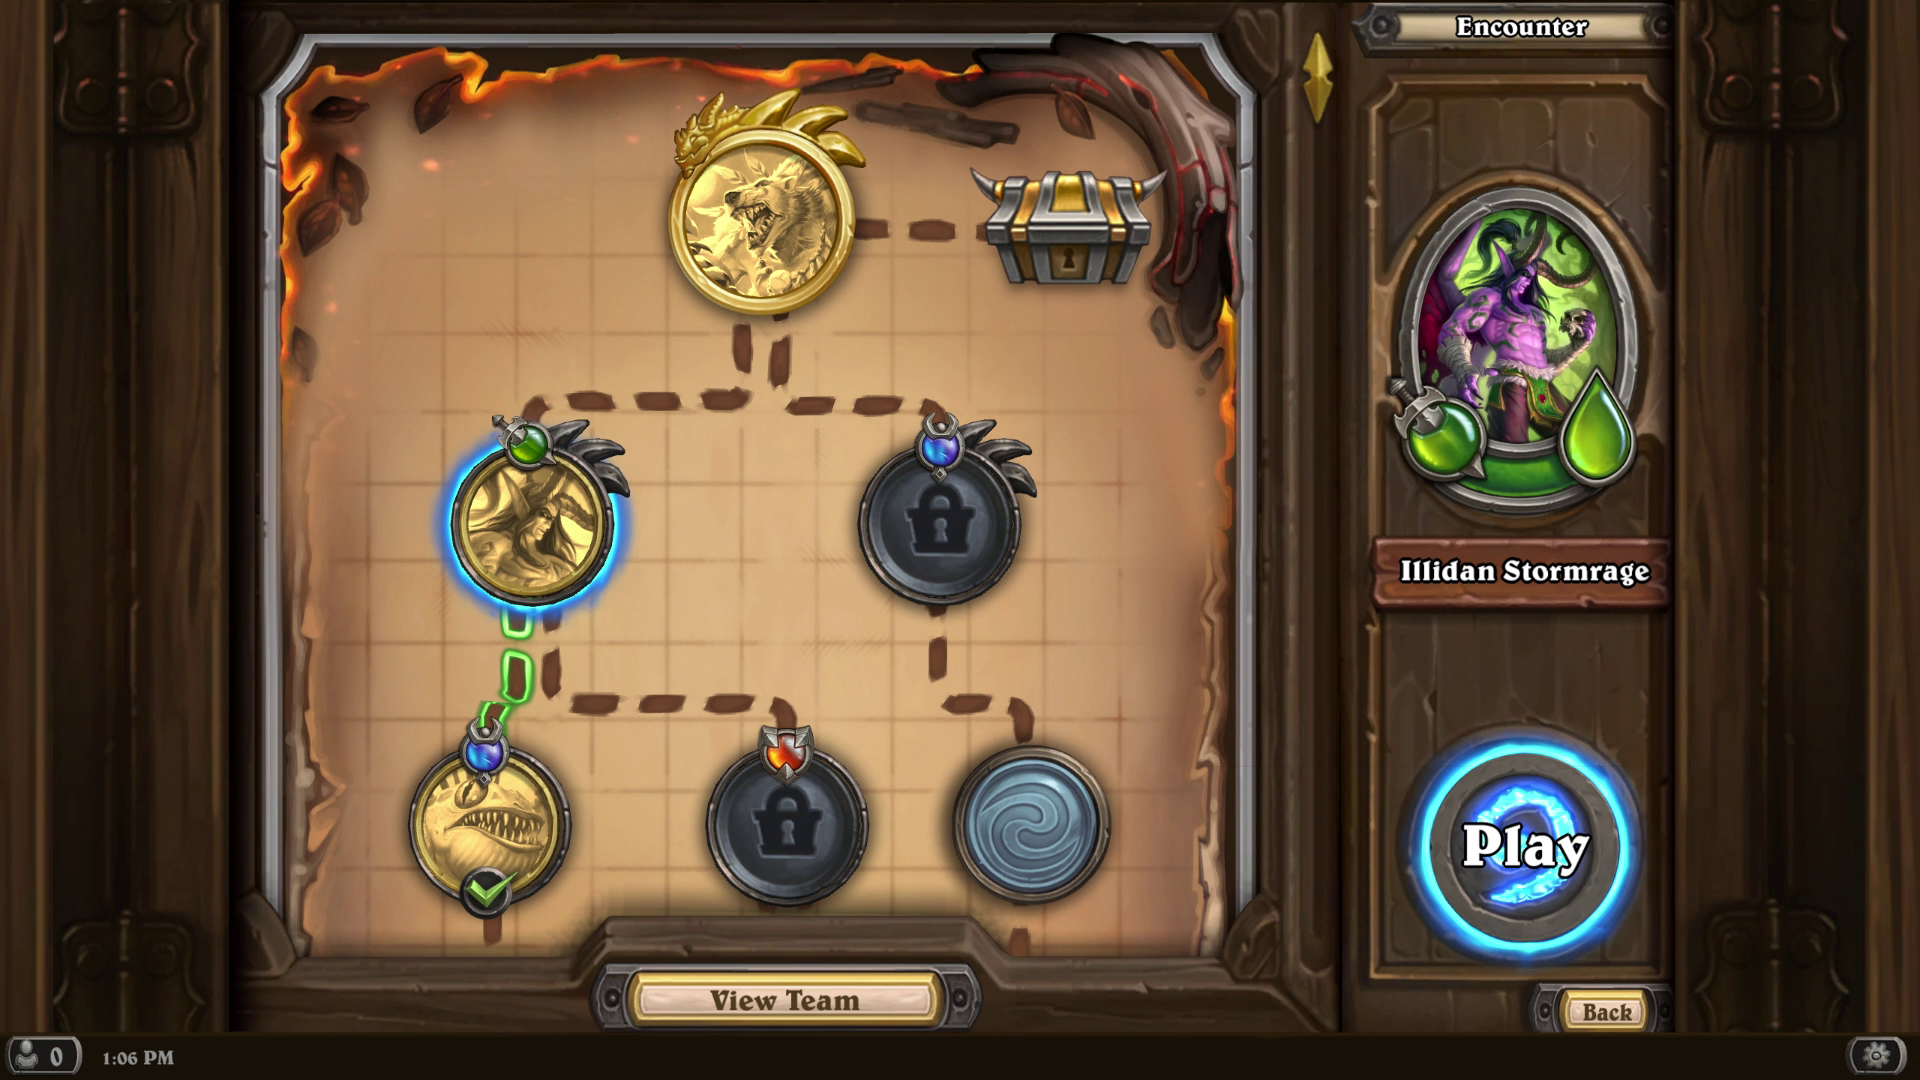 Hearthstone - a shot of a Mercenaries run in progress, with fights on a map connected by dotted lines ultimately leading to a final boss and then loot